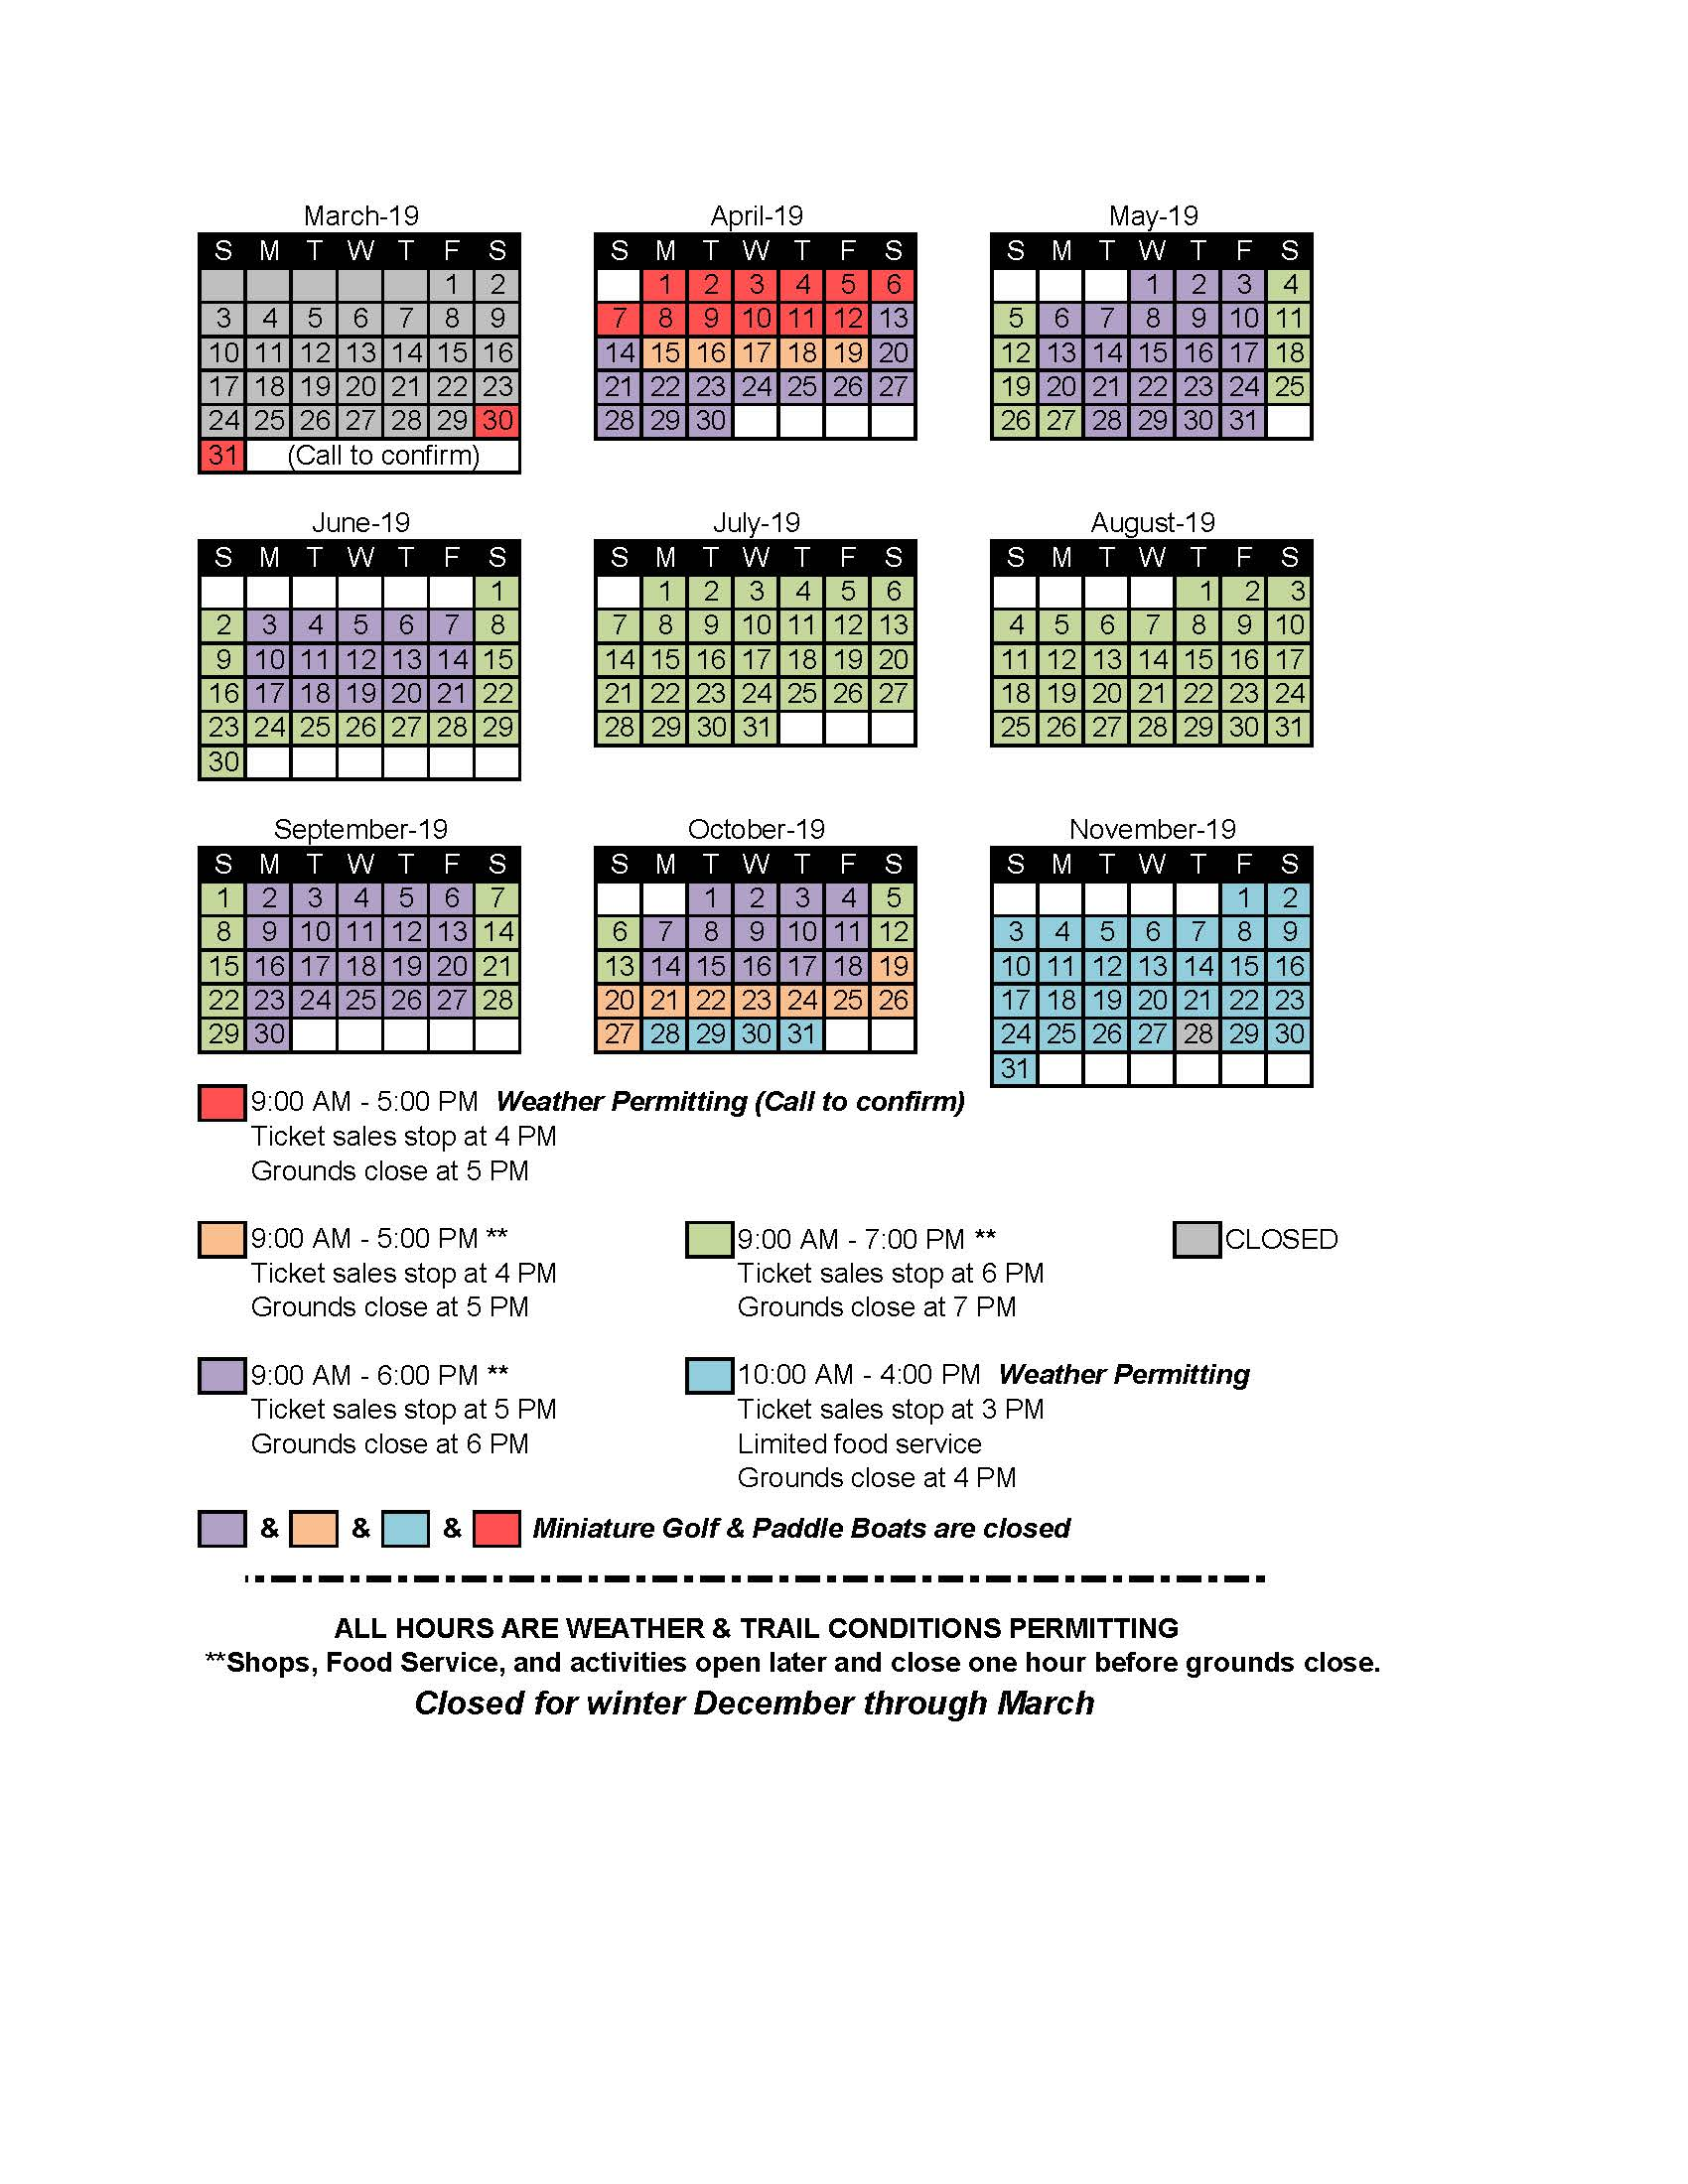 2019 Bushkill Falls Operating Schedule